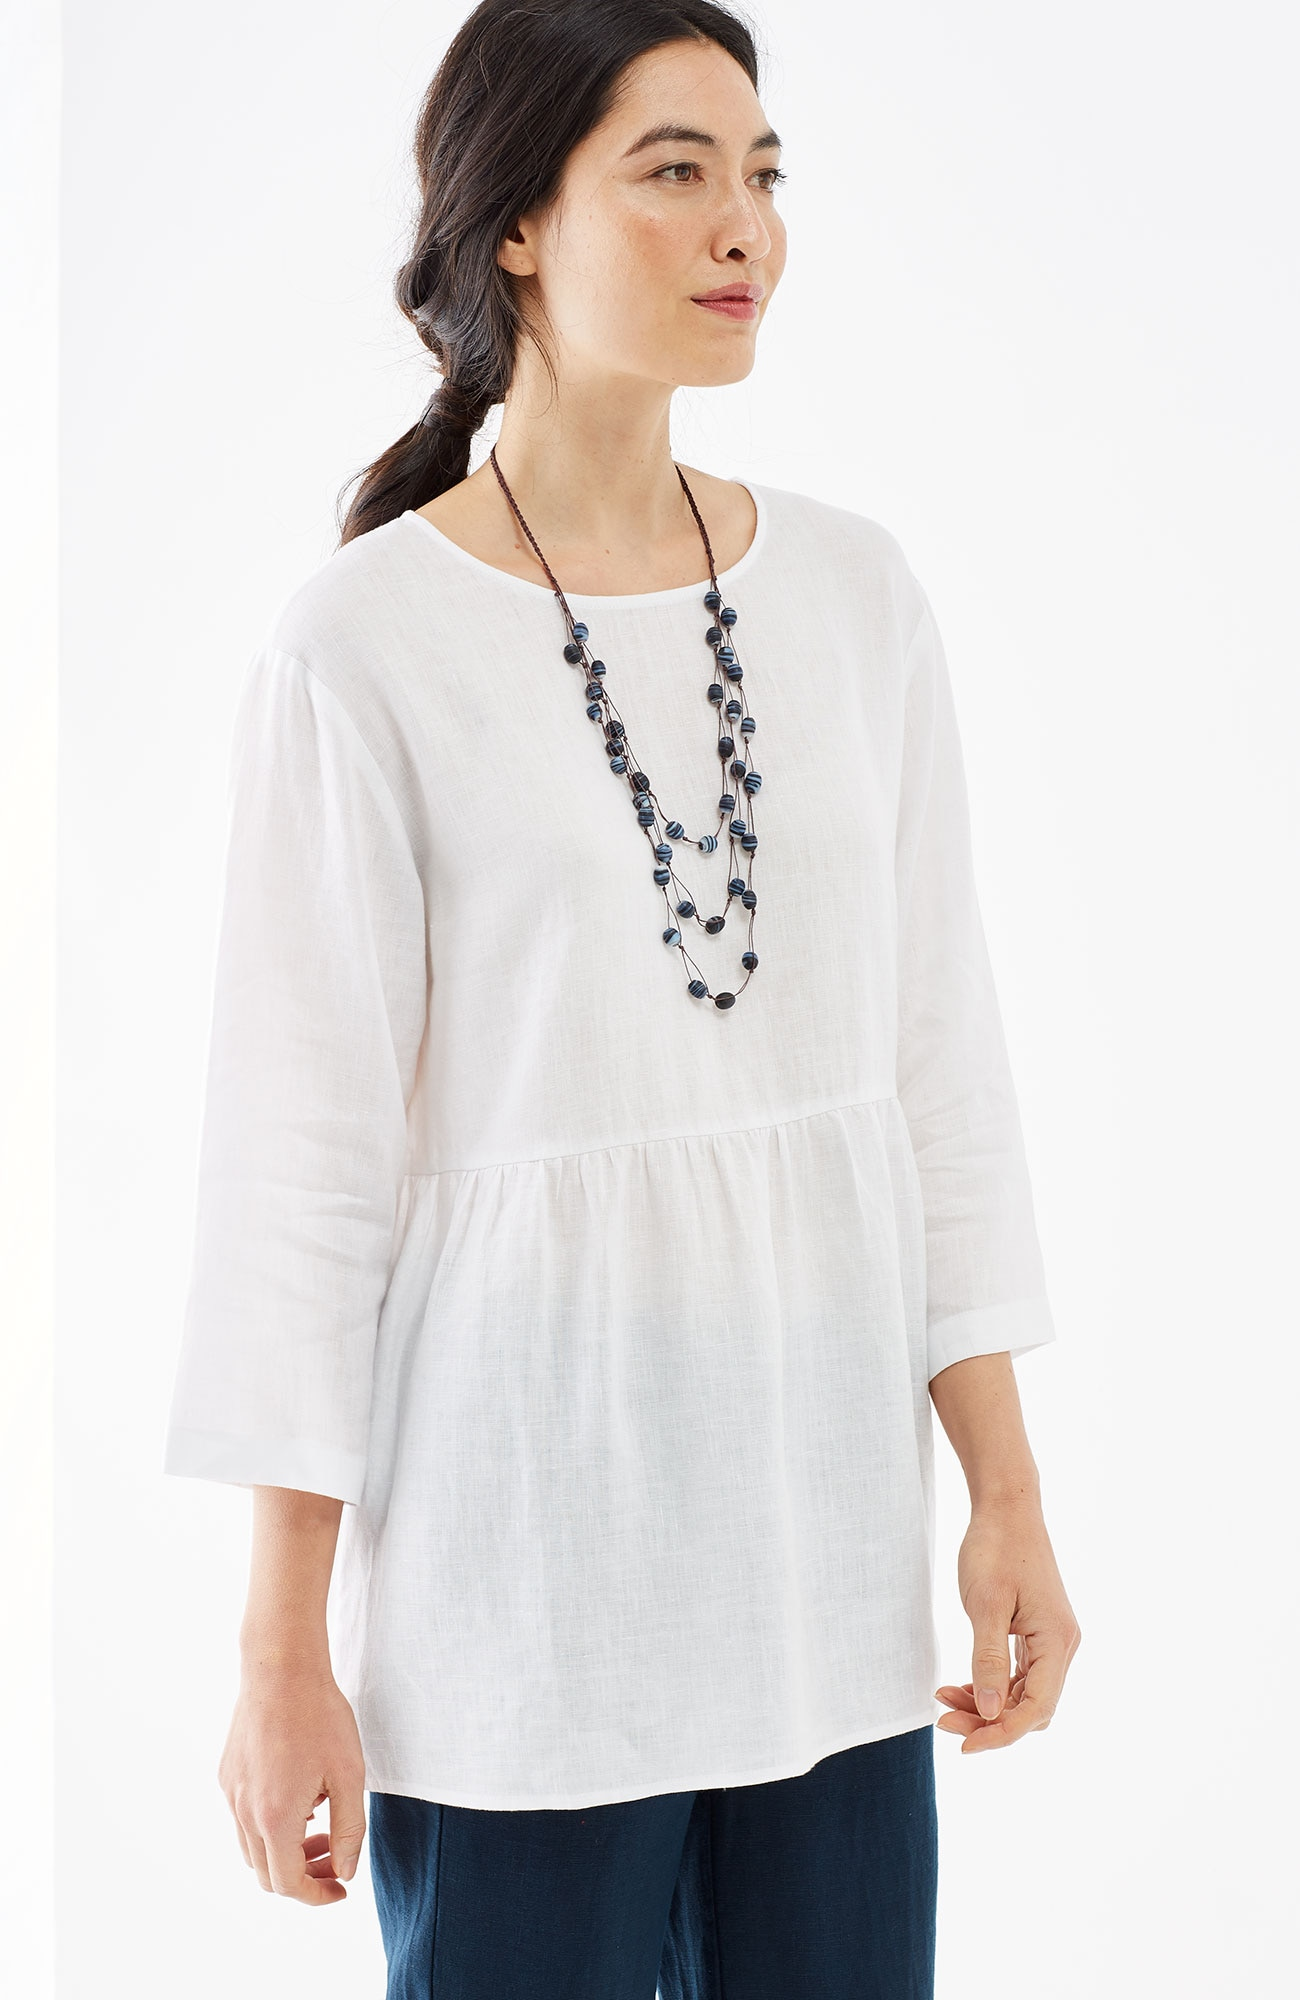 Pure Jill linen swing top